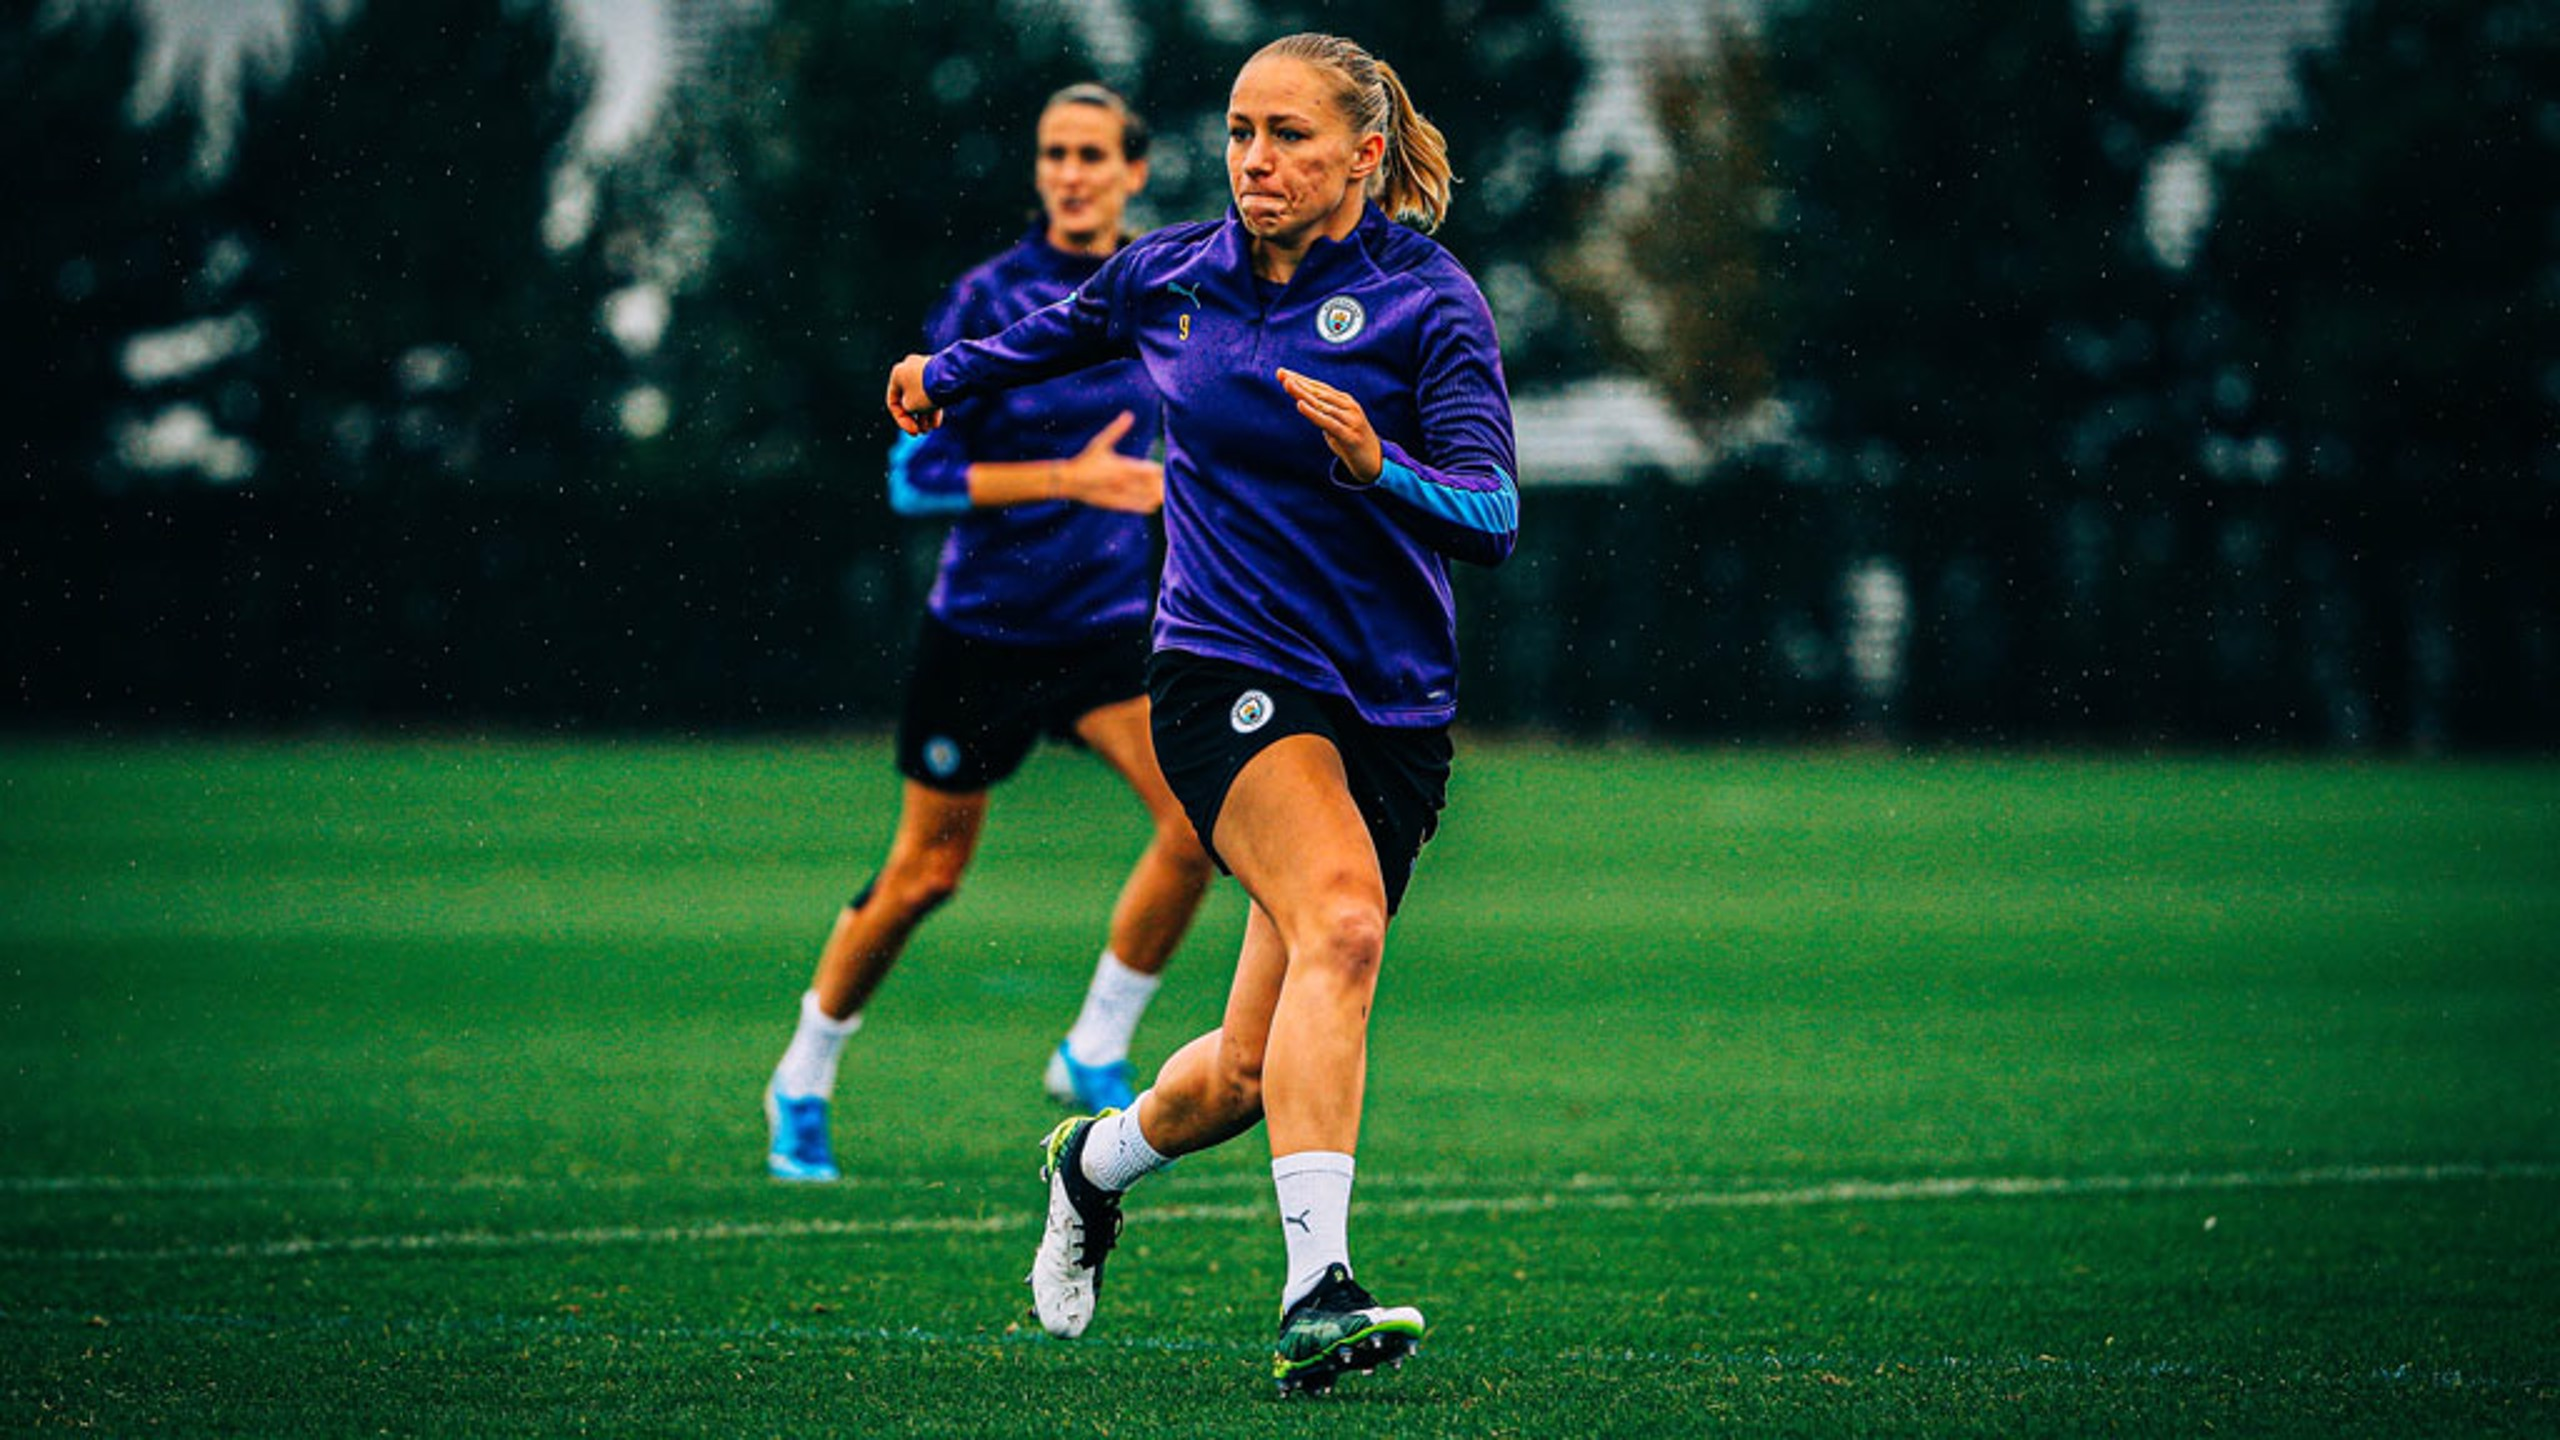 BREMER BULLET: Pauline Bremer races into a goalscoring opportunity